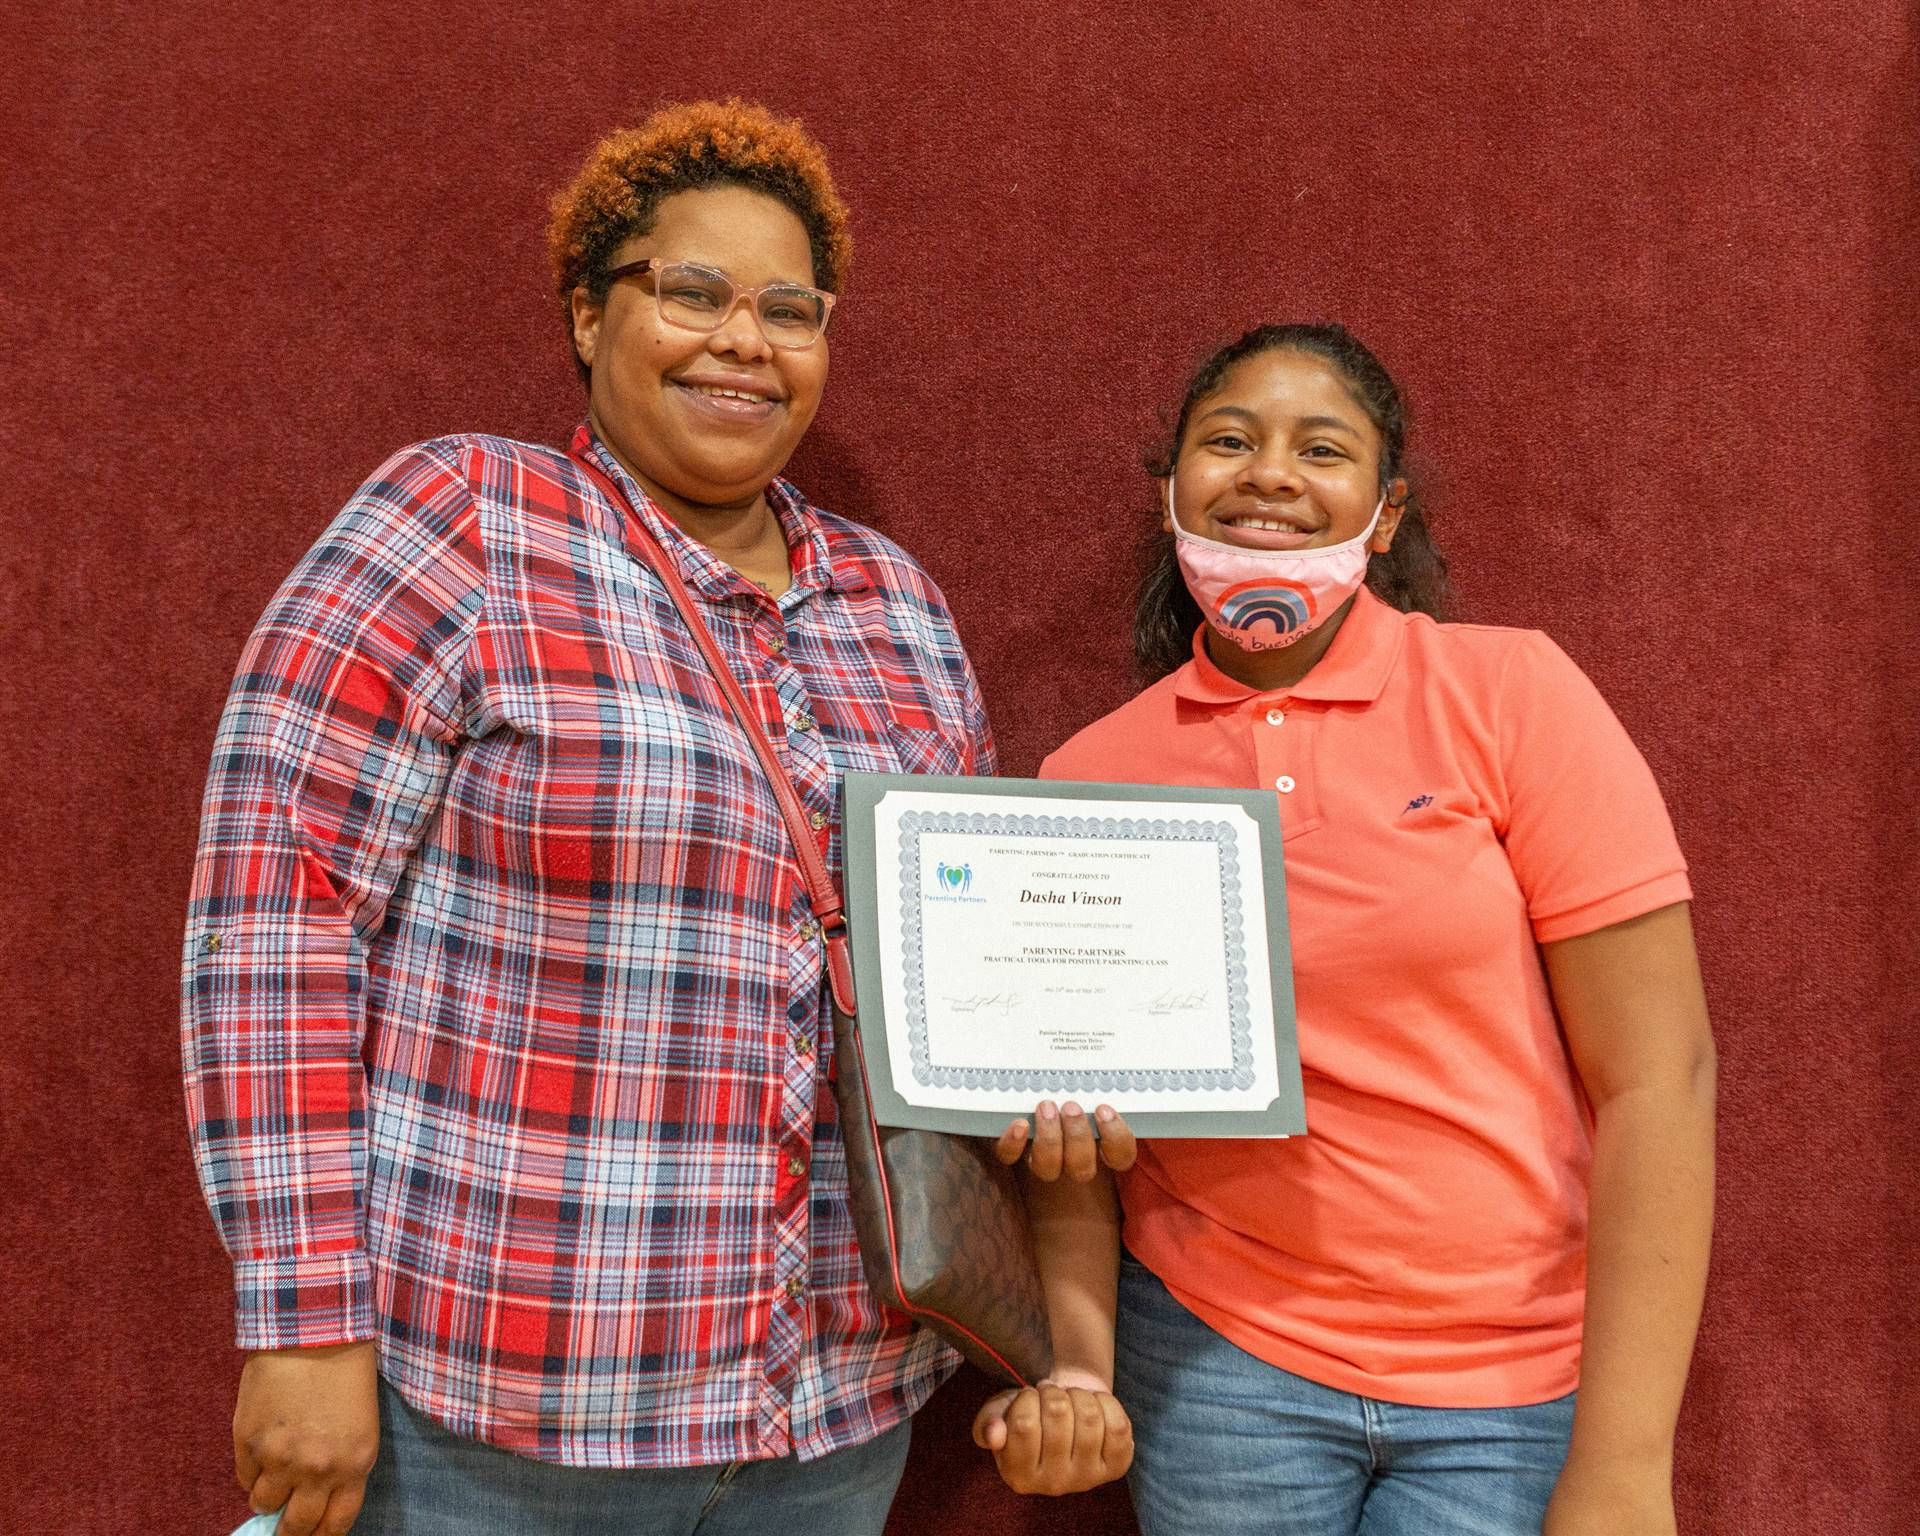 mother and daughter holding certificate